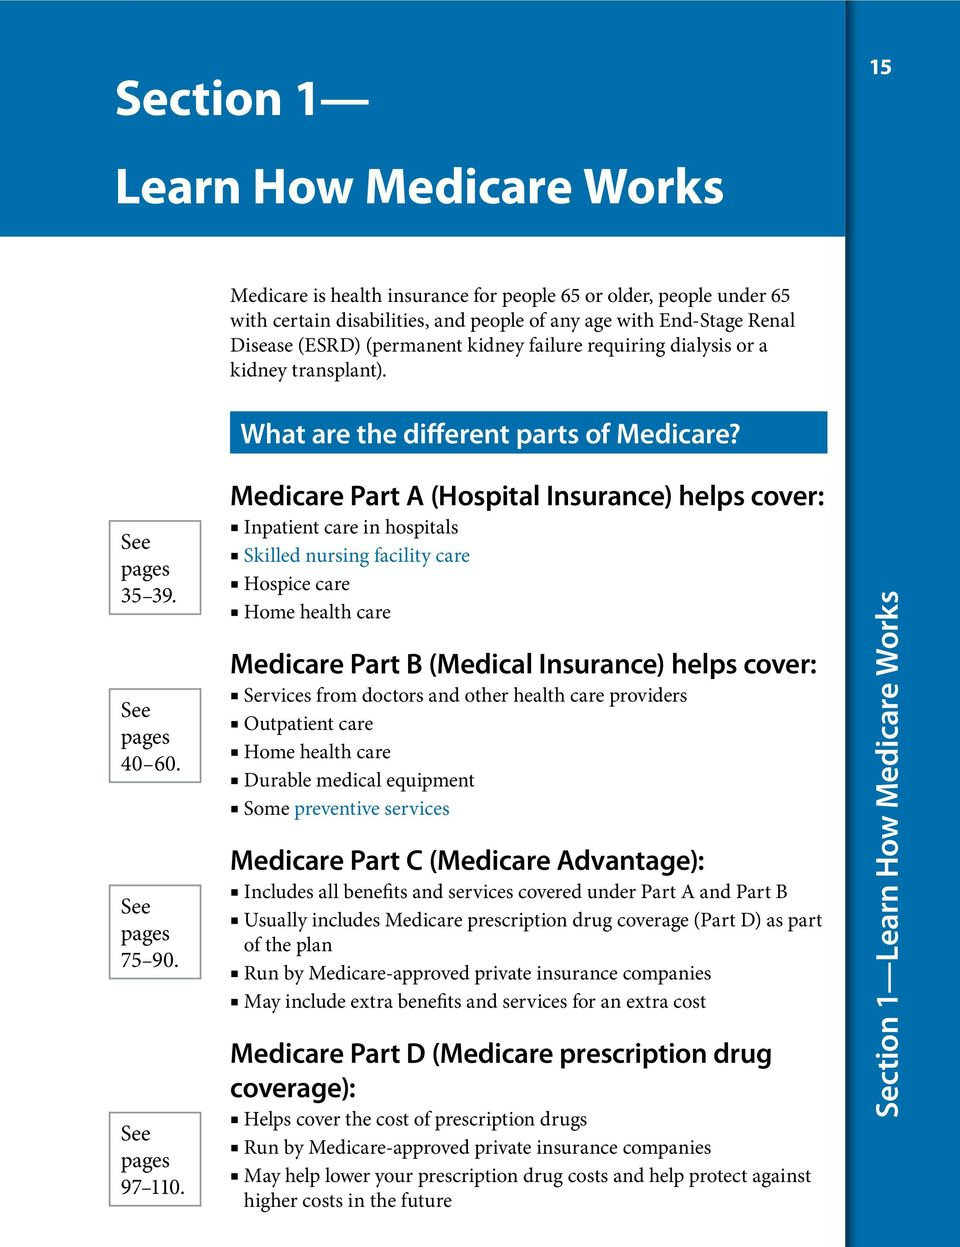 Medicare Part A (Hospital Insurance) helps cover: Inpatient care in hospitals Skilled nursing facility care Hospice care Home health care Medicare Part B (Medical Insurance) helps cover: Services